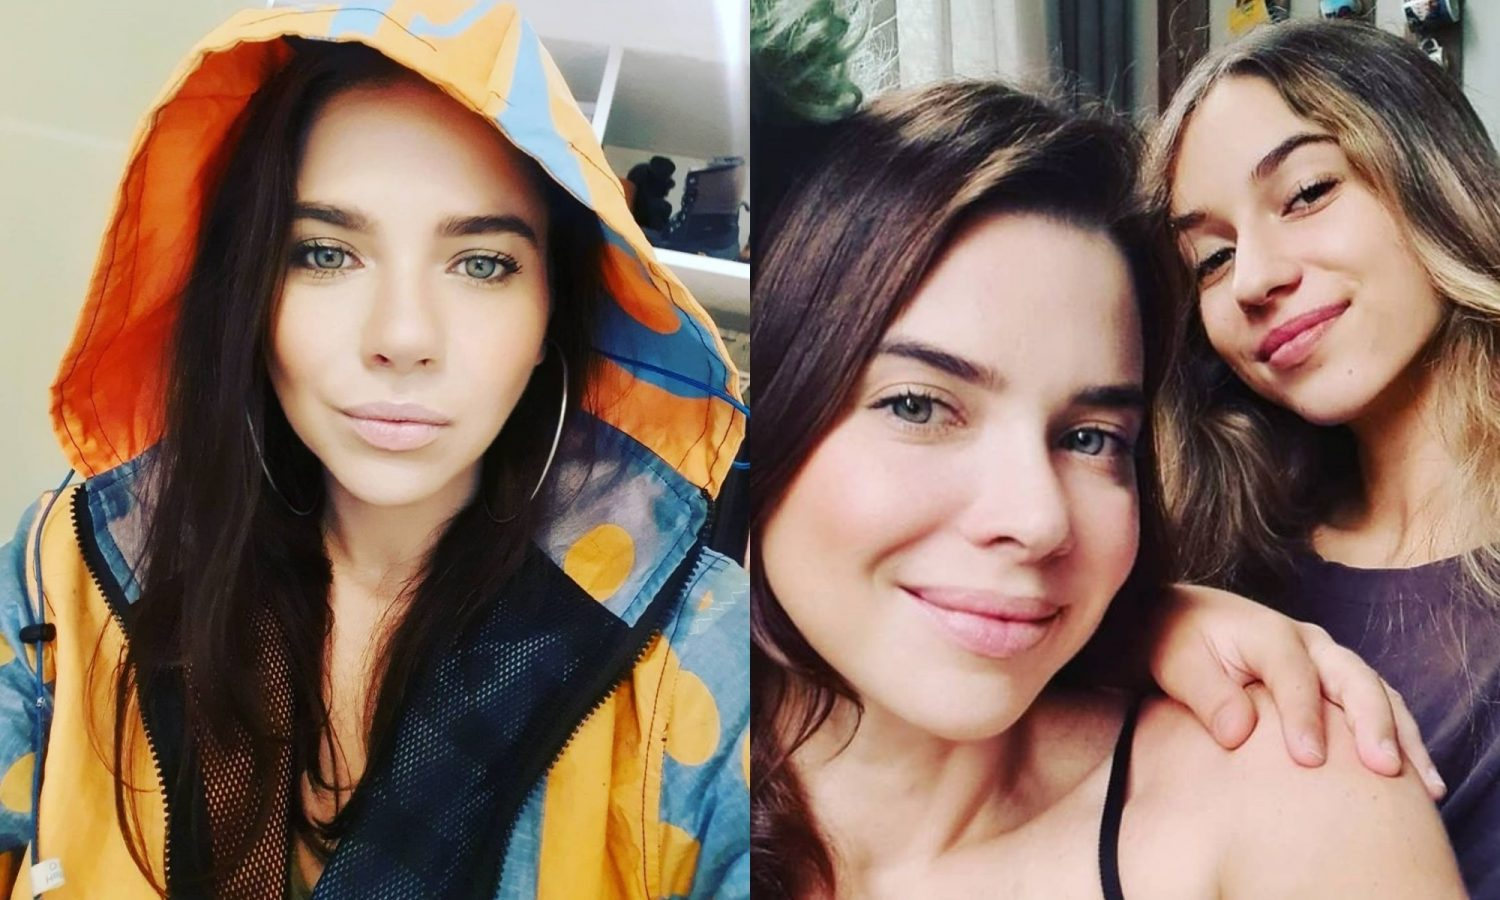 mom deletes influencer daughter's social media accounts with 1.7 million followers